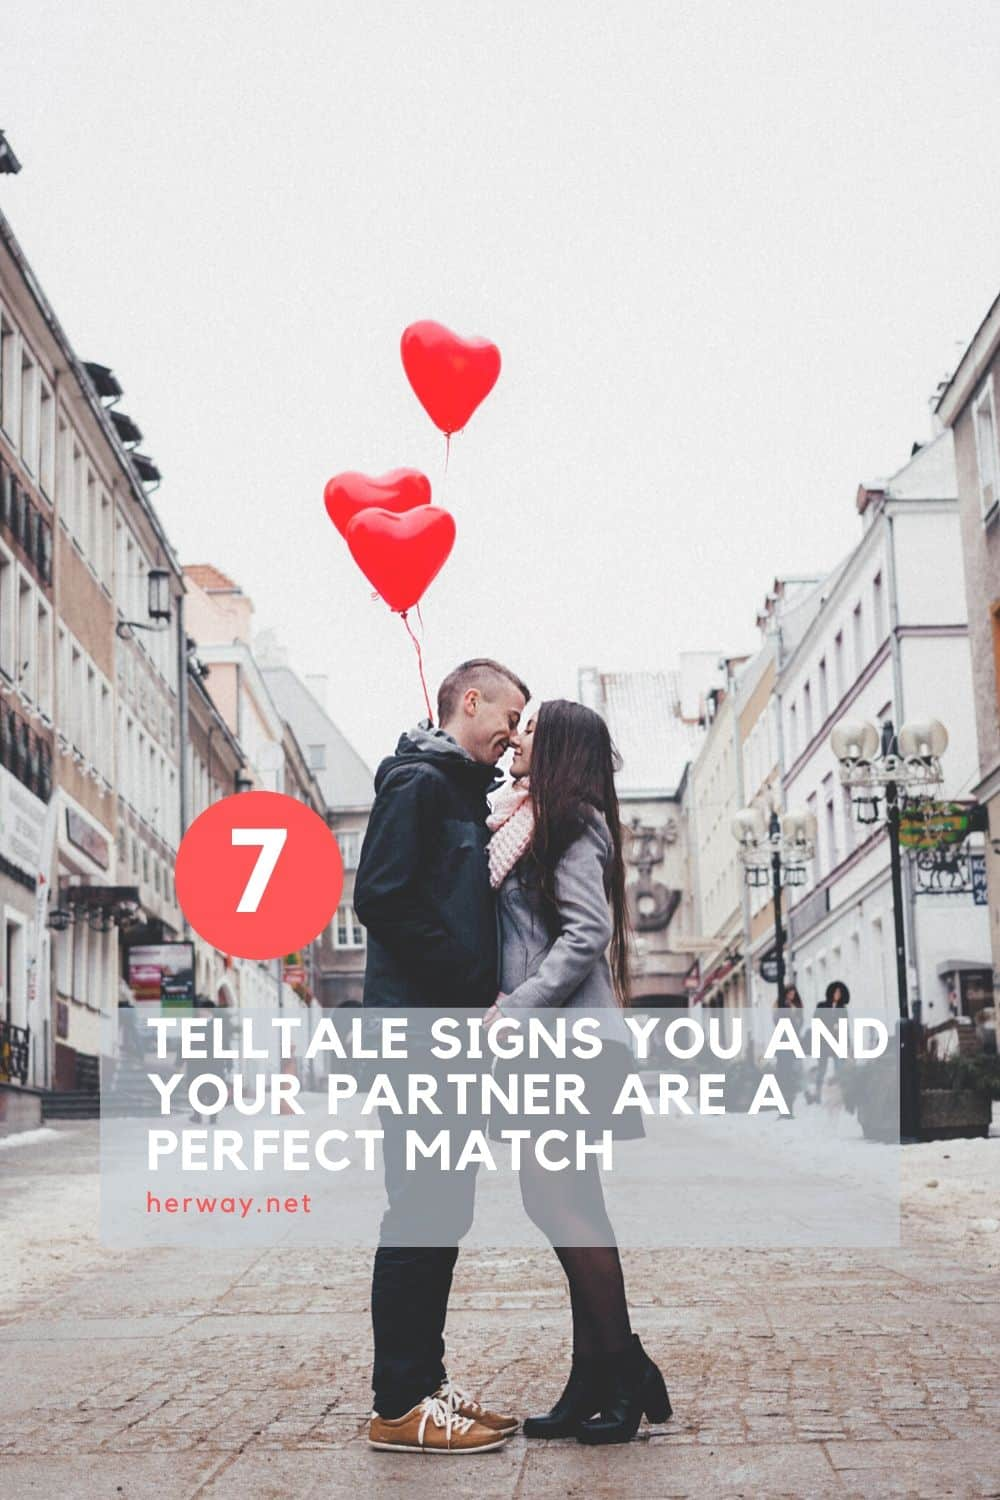 TELLTALE SIGNS YOU AND YOUR PARTNER ARE A PERFECT MATCH